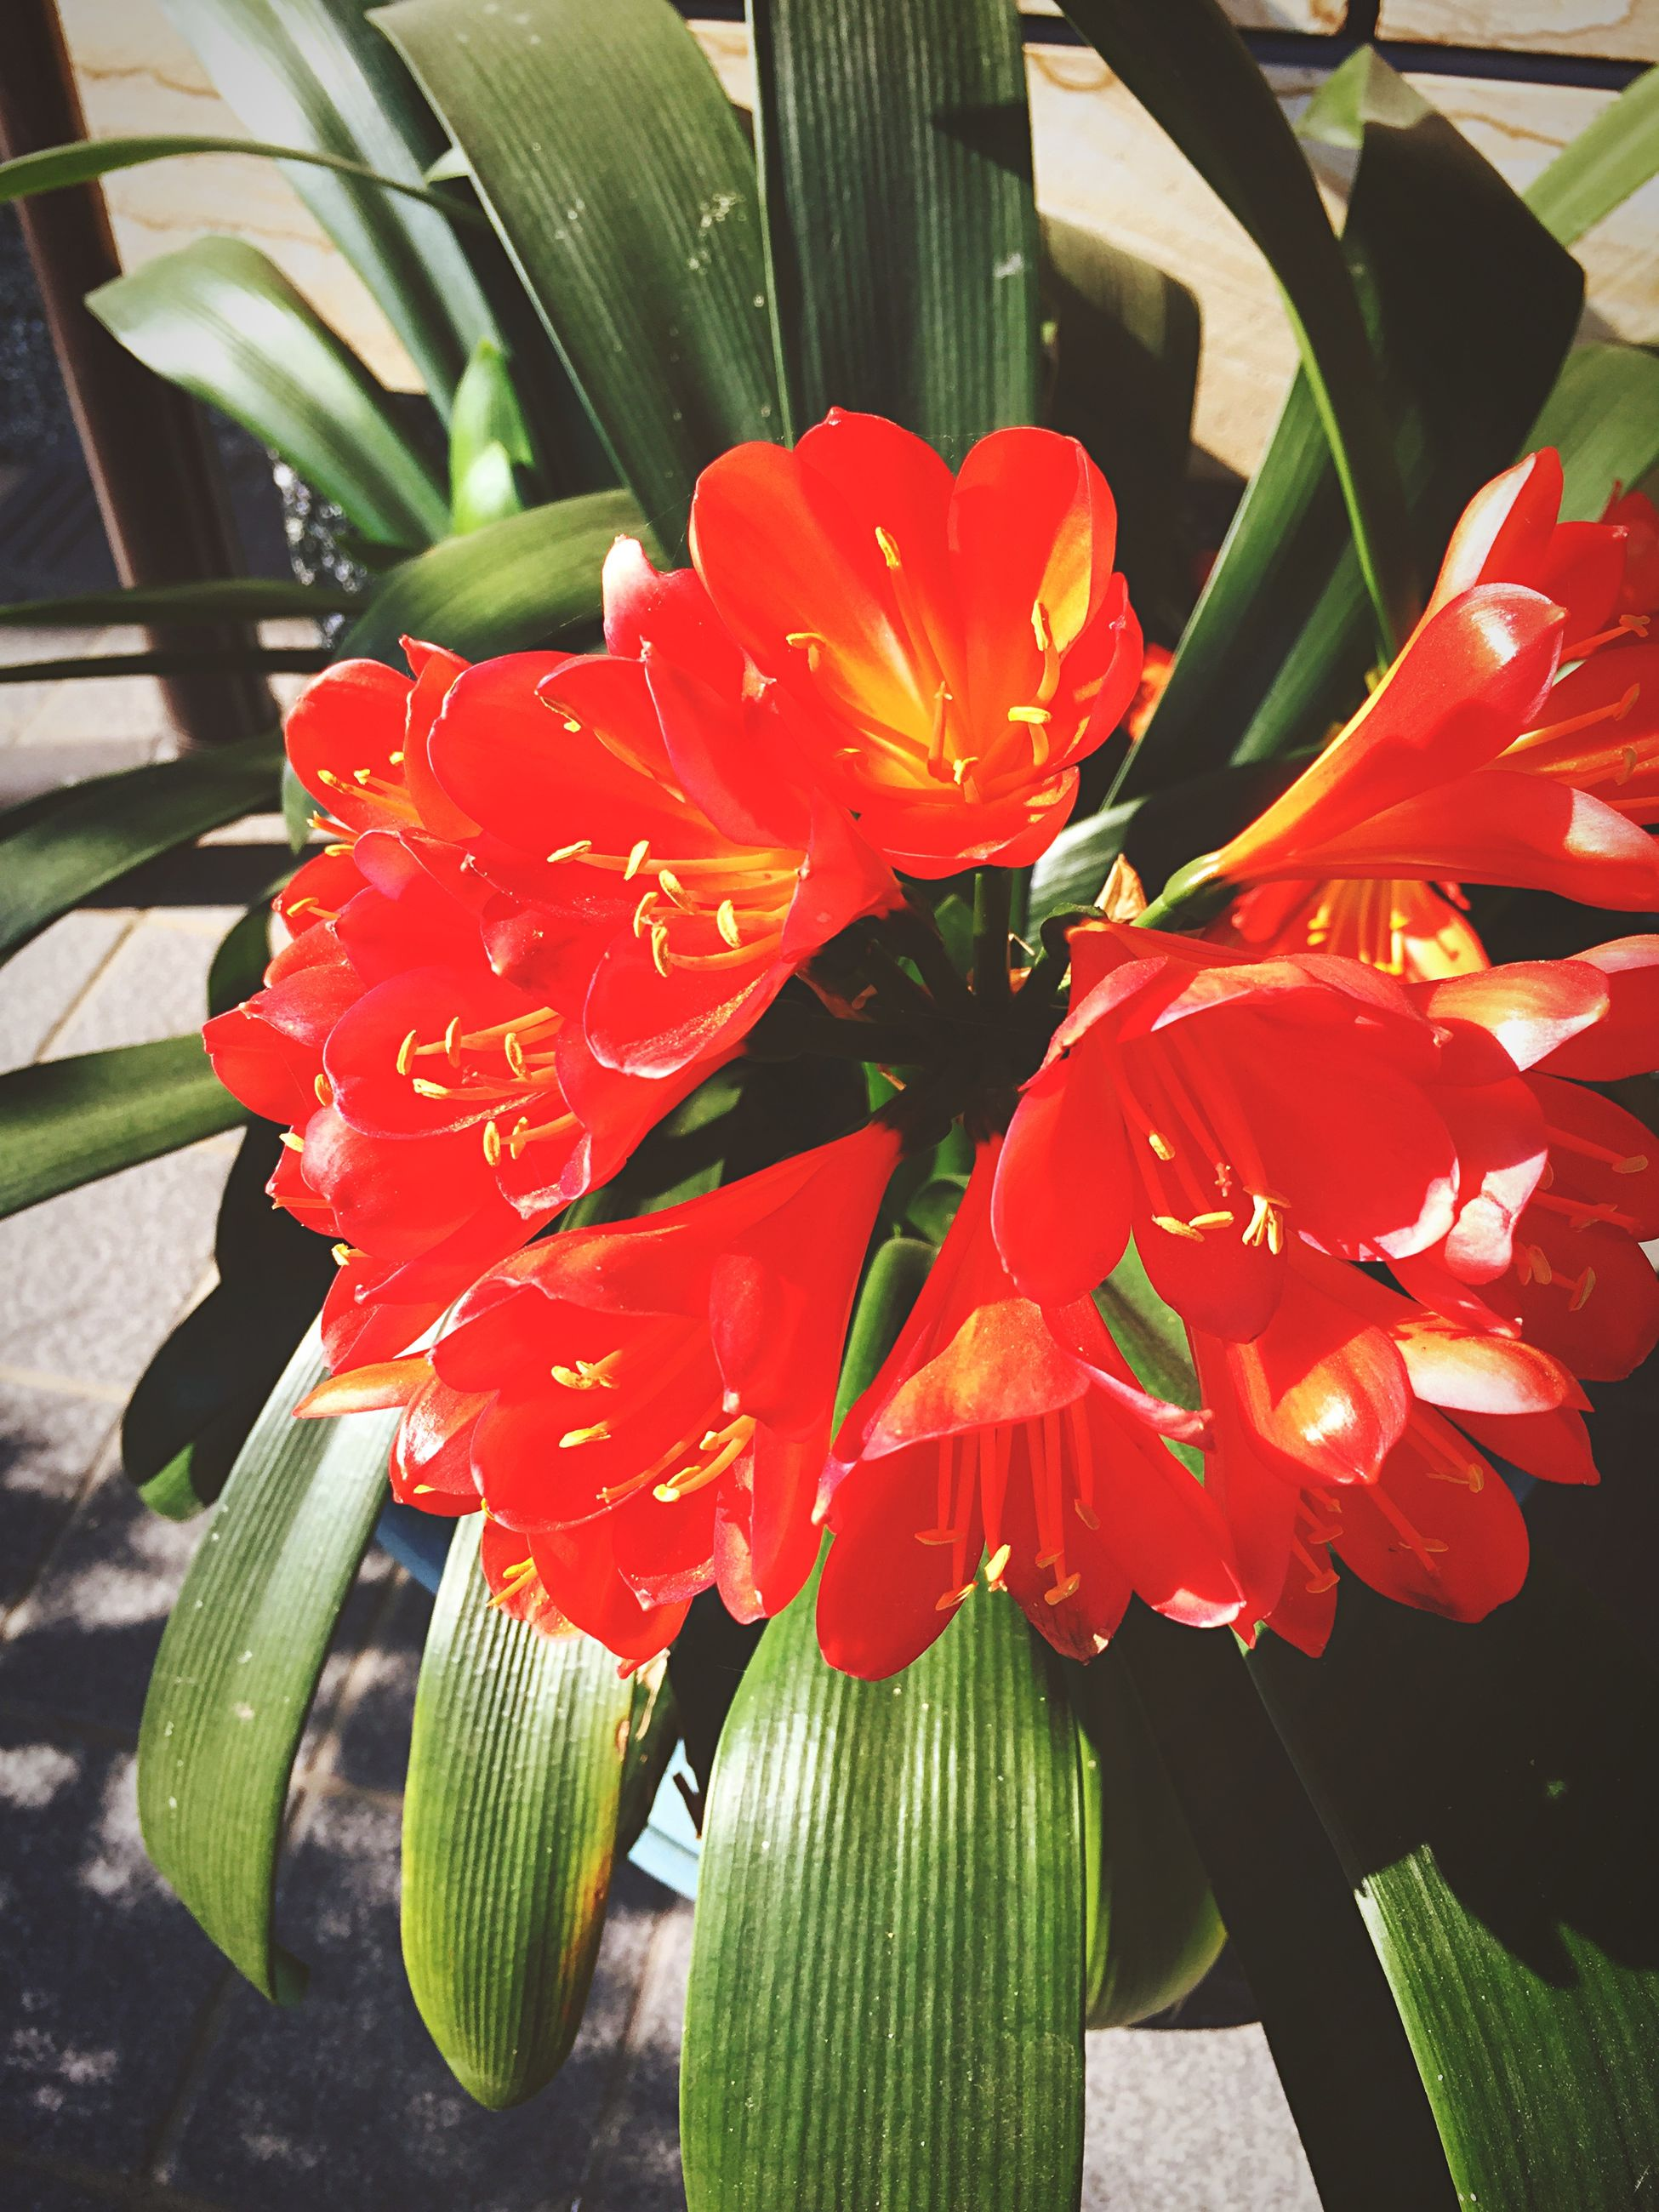 flower, freshness, petal, red, flower head, fragility, growth, beauty in nature, leaf, plant, nature, blooming, close-up, focus on foreground, in bloom, potted plant, day, sunlight, high angle view, single flower